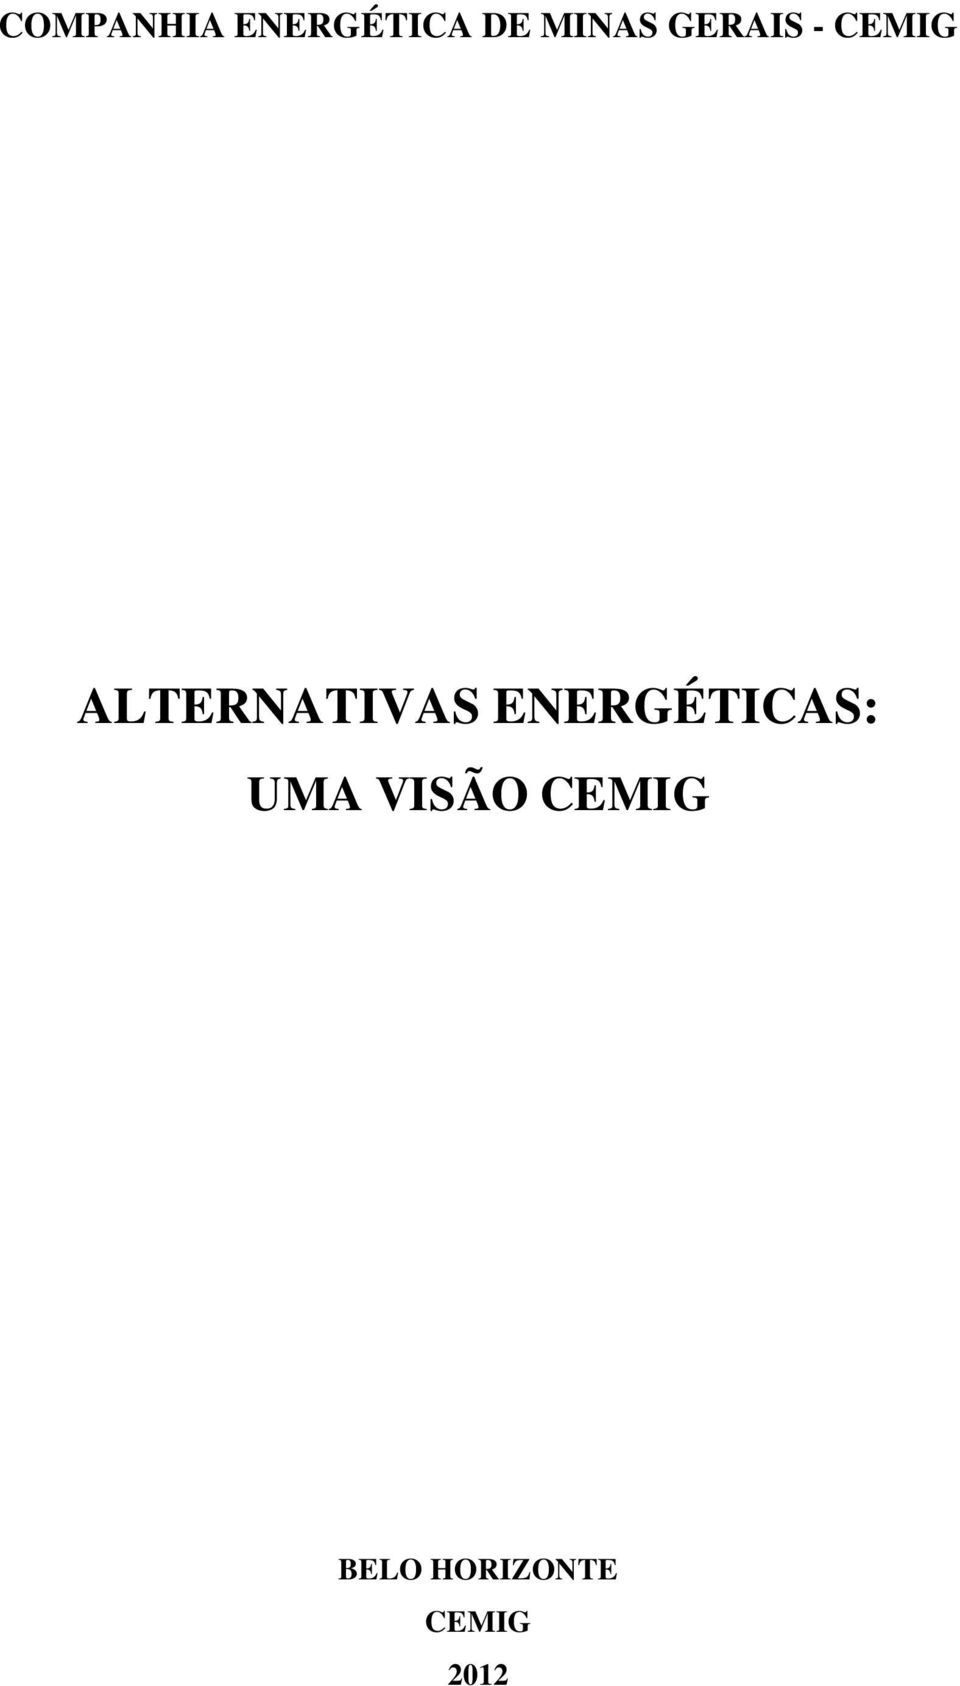 ALTERNATIVAS ENERGÉTICAS: